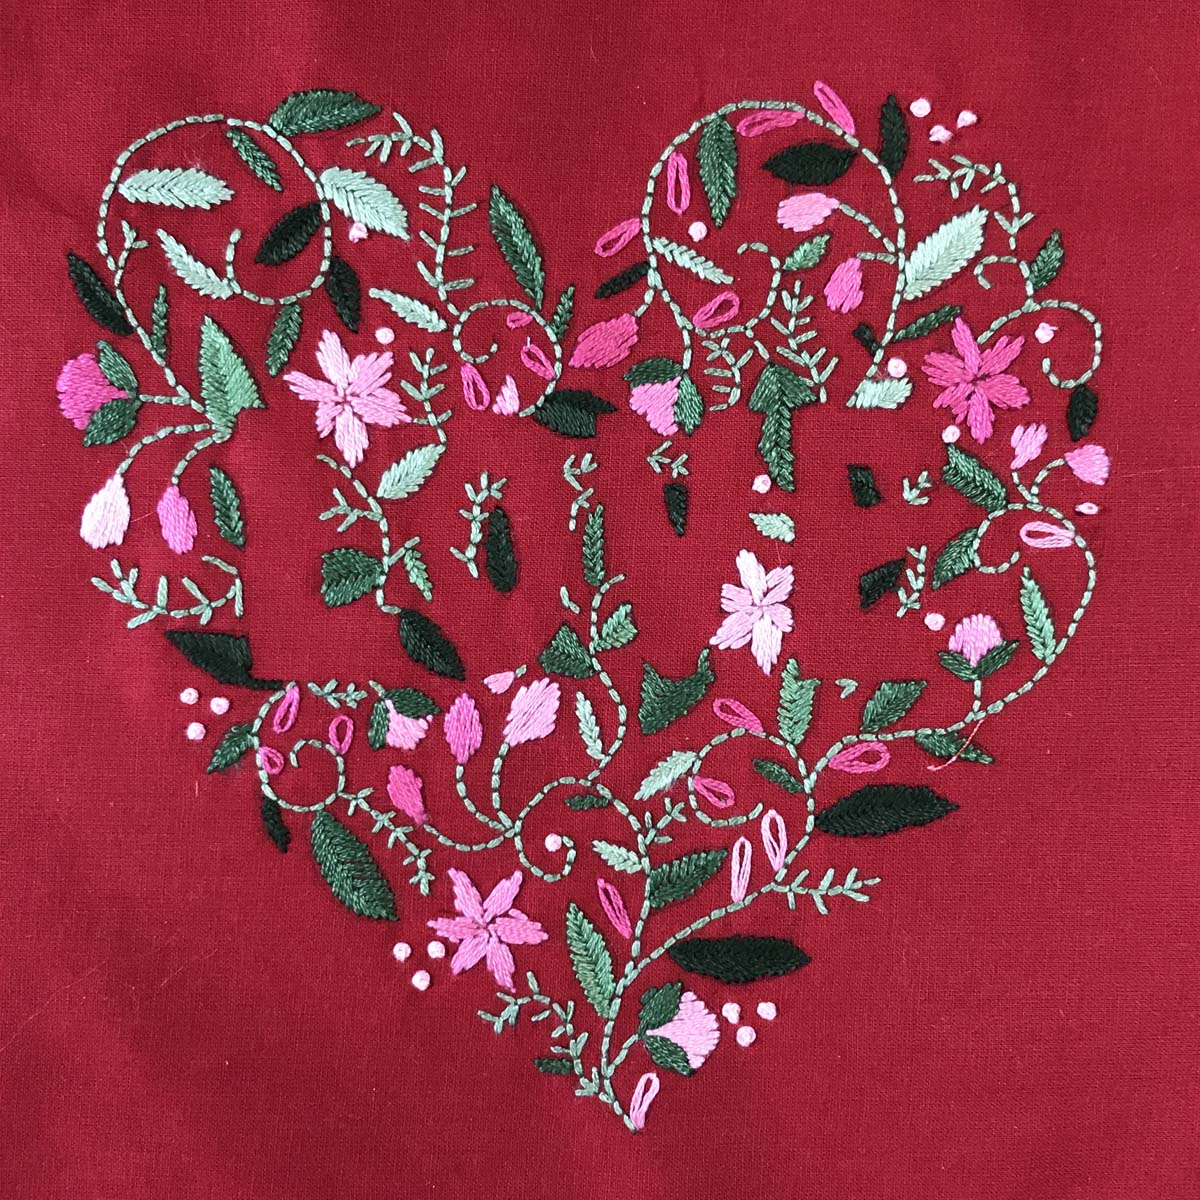 Hand embroidered heart shape with the word LOVE in the center